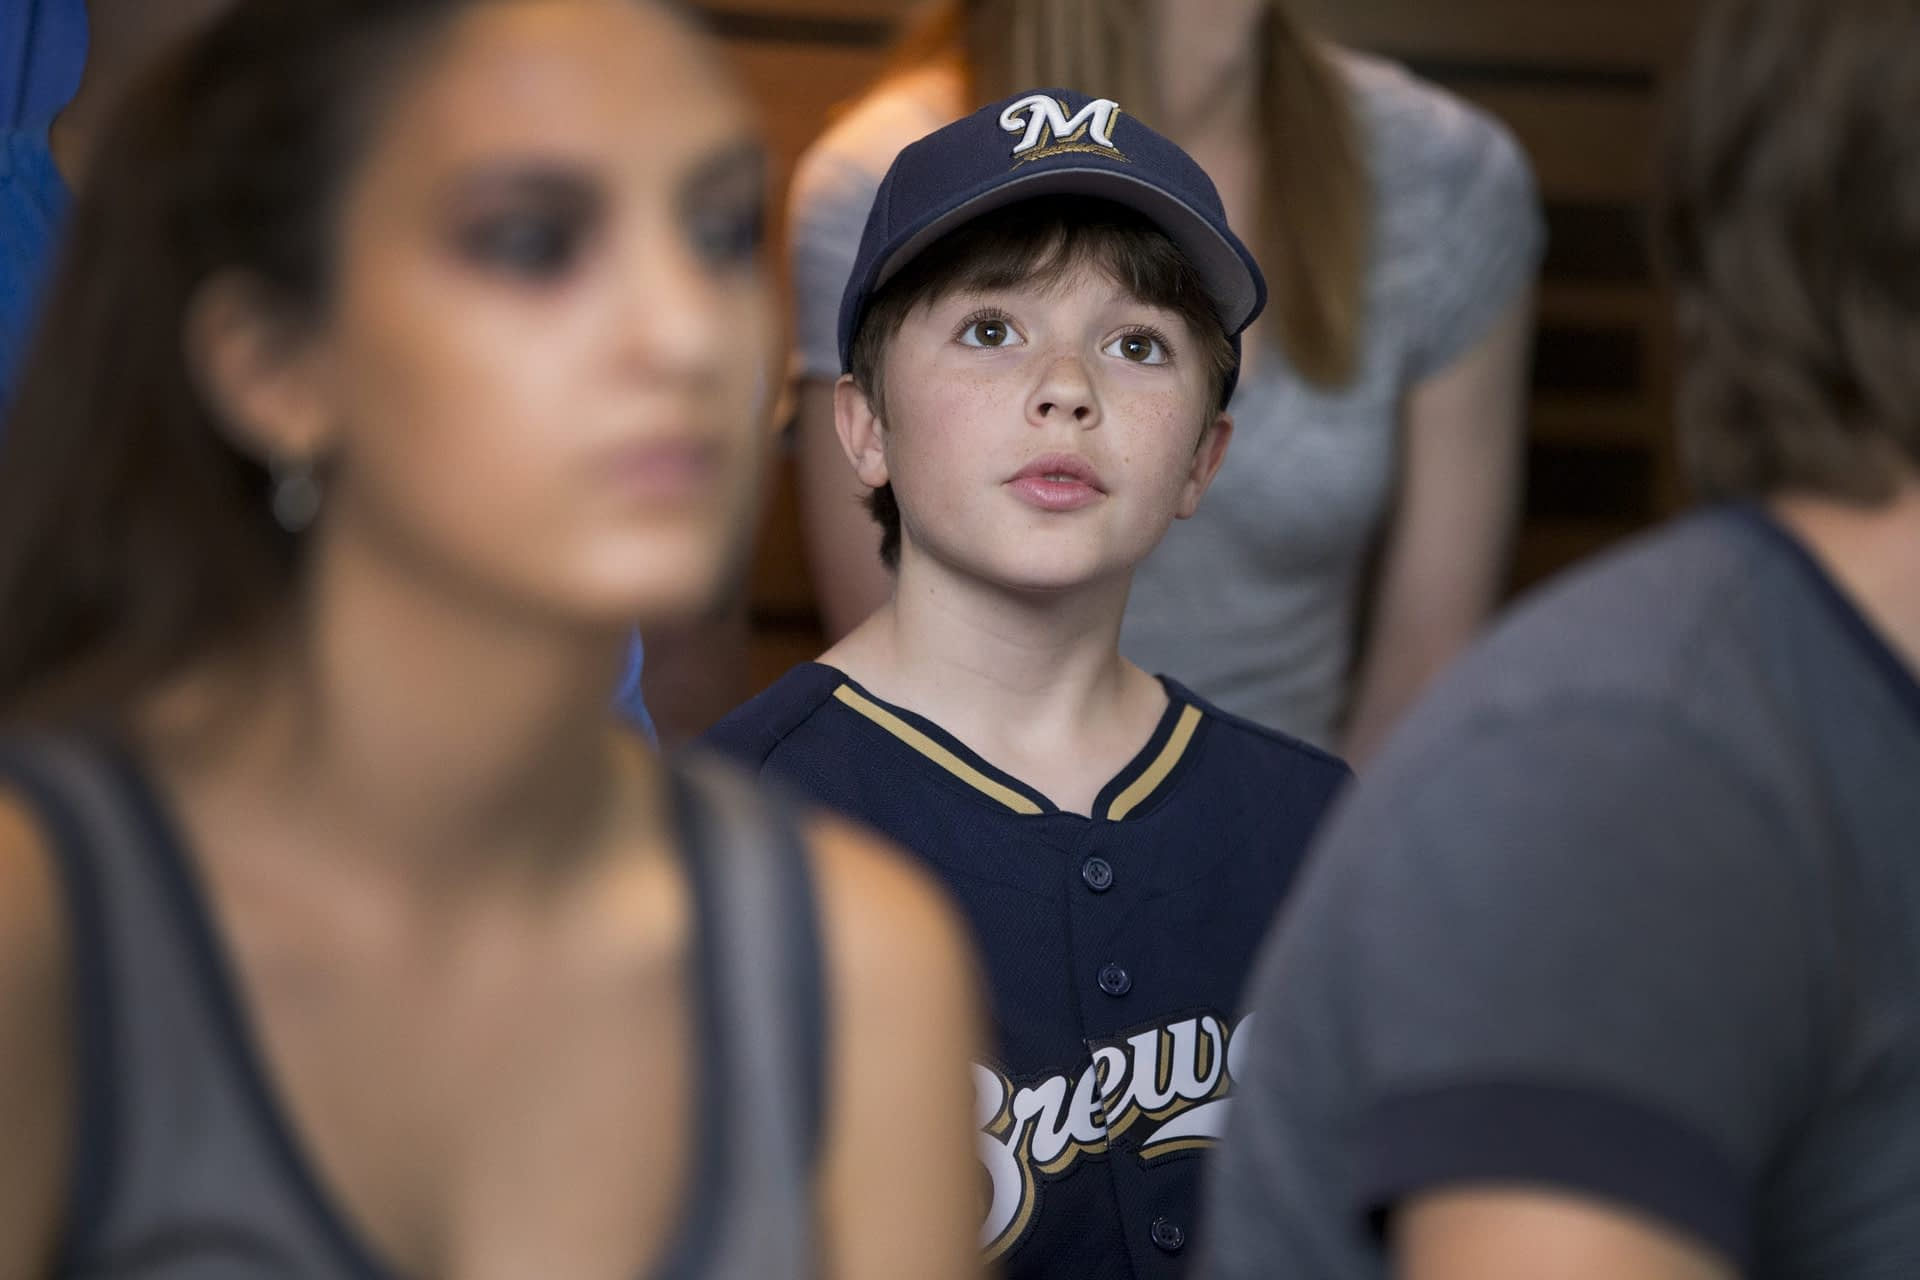 Brewers Selig Experience